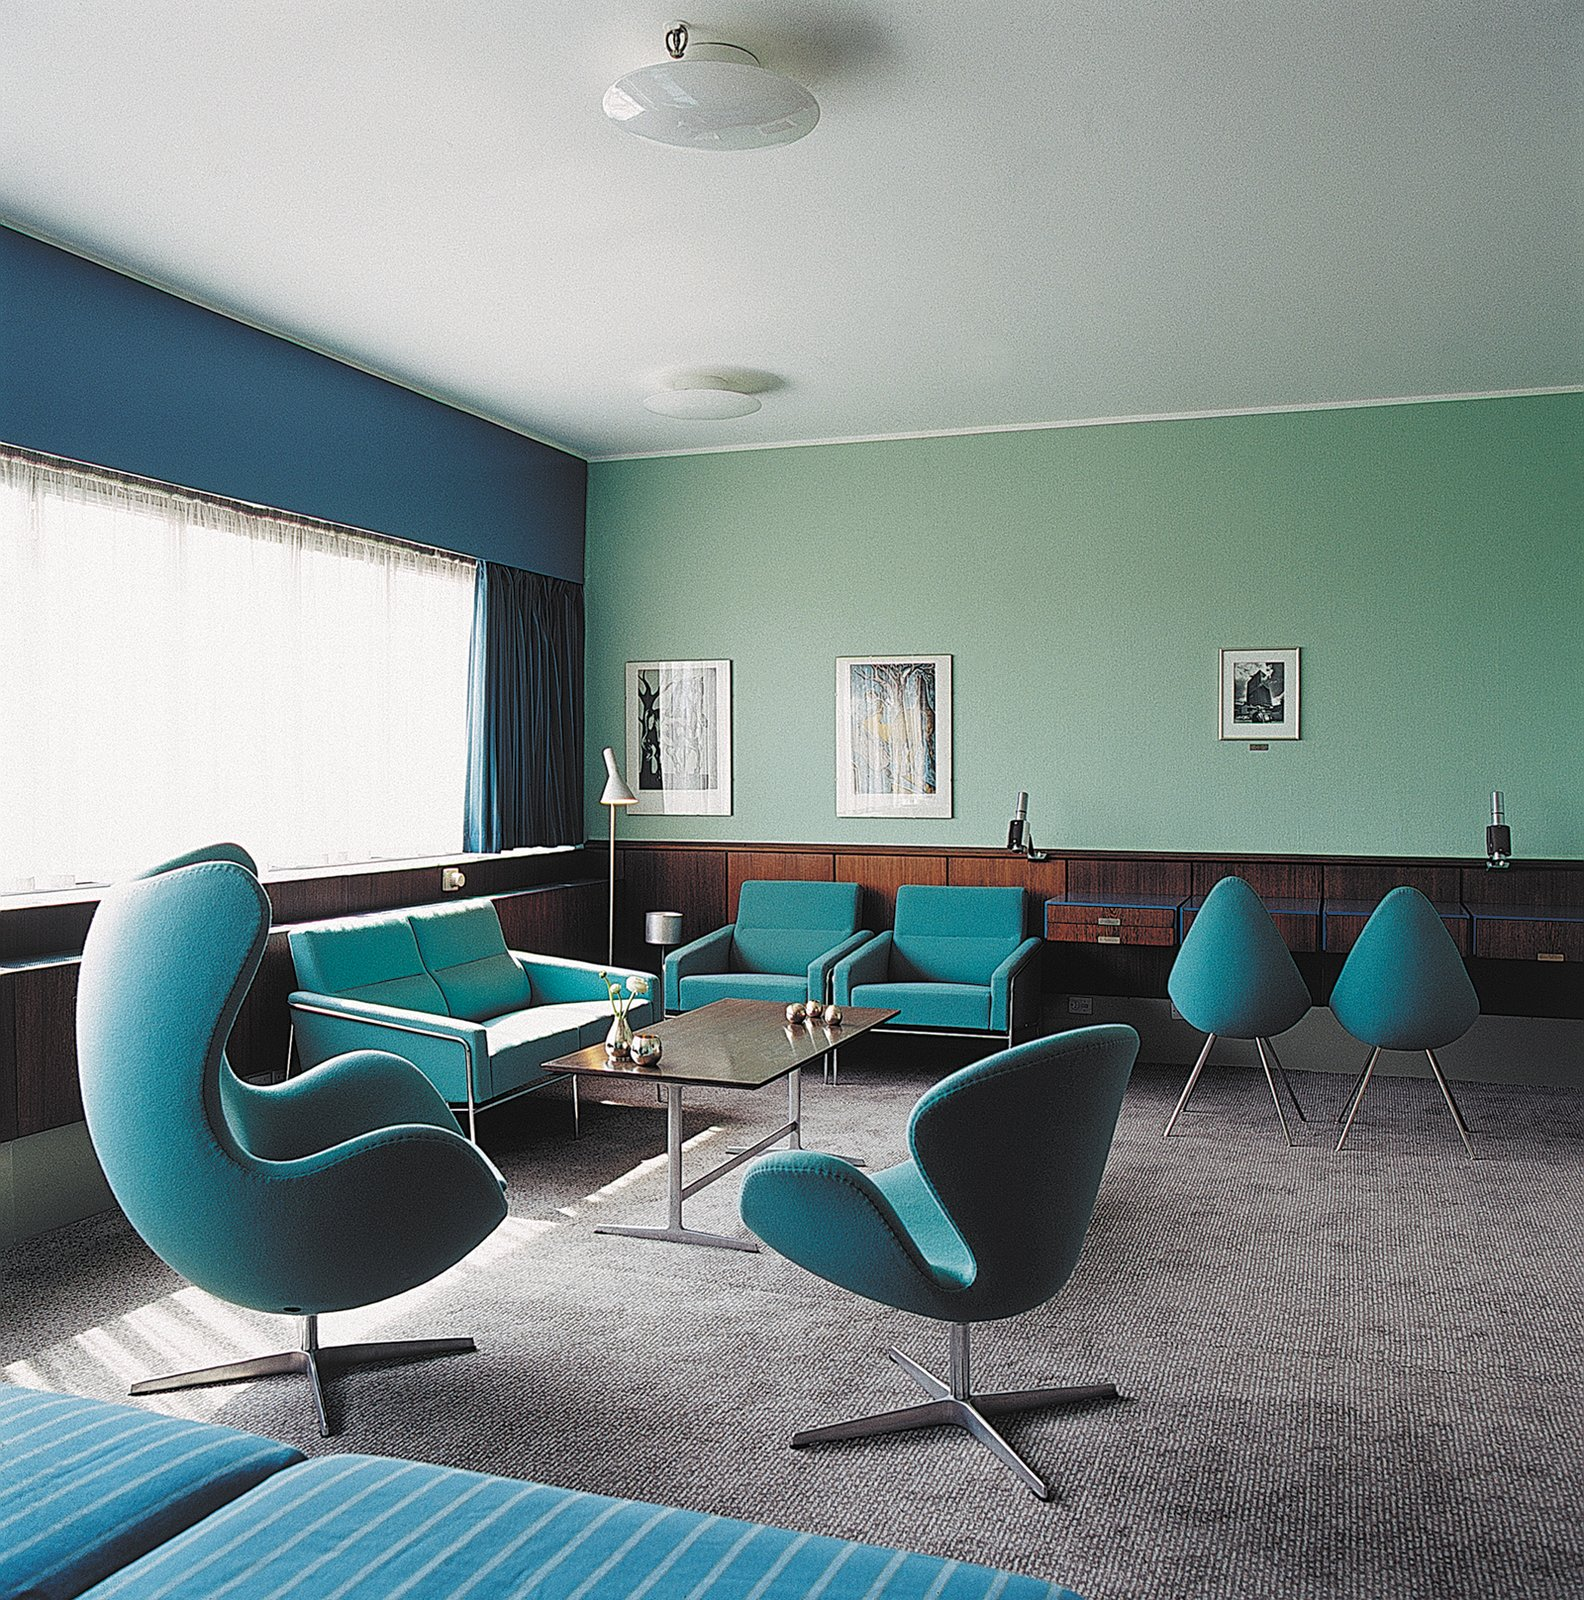 Photo 1 of 10 in Jaime Hayon is Given the Keys to an Iconic Copenhagen Hotel